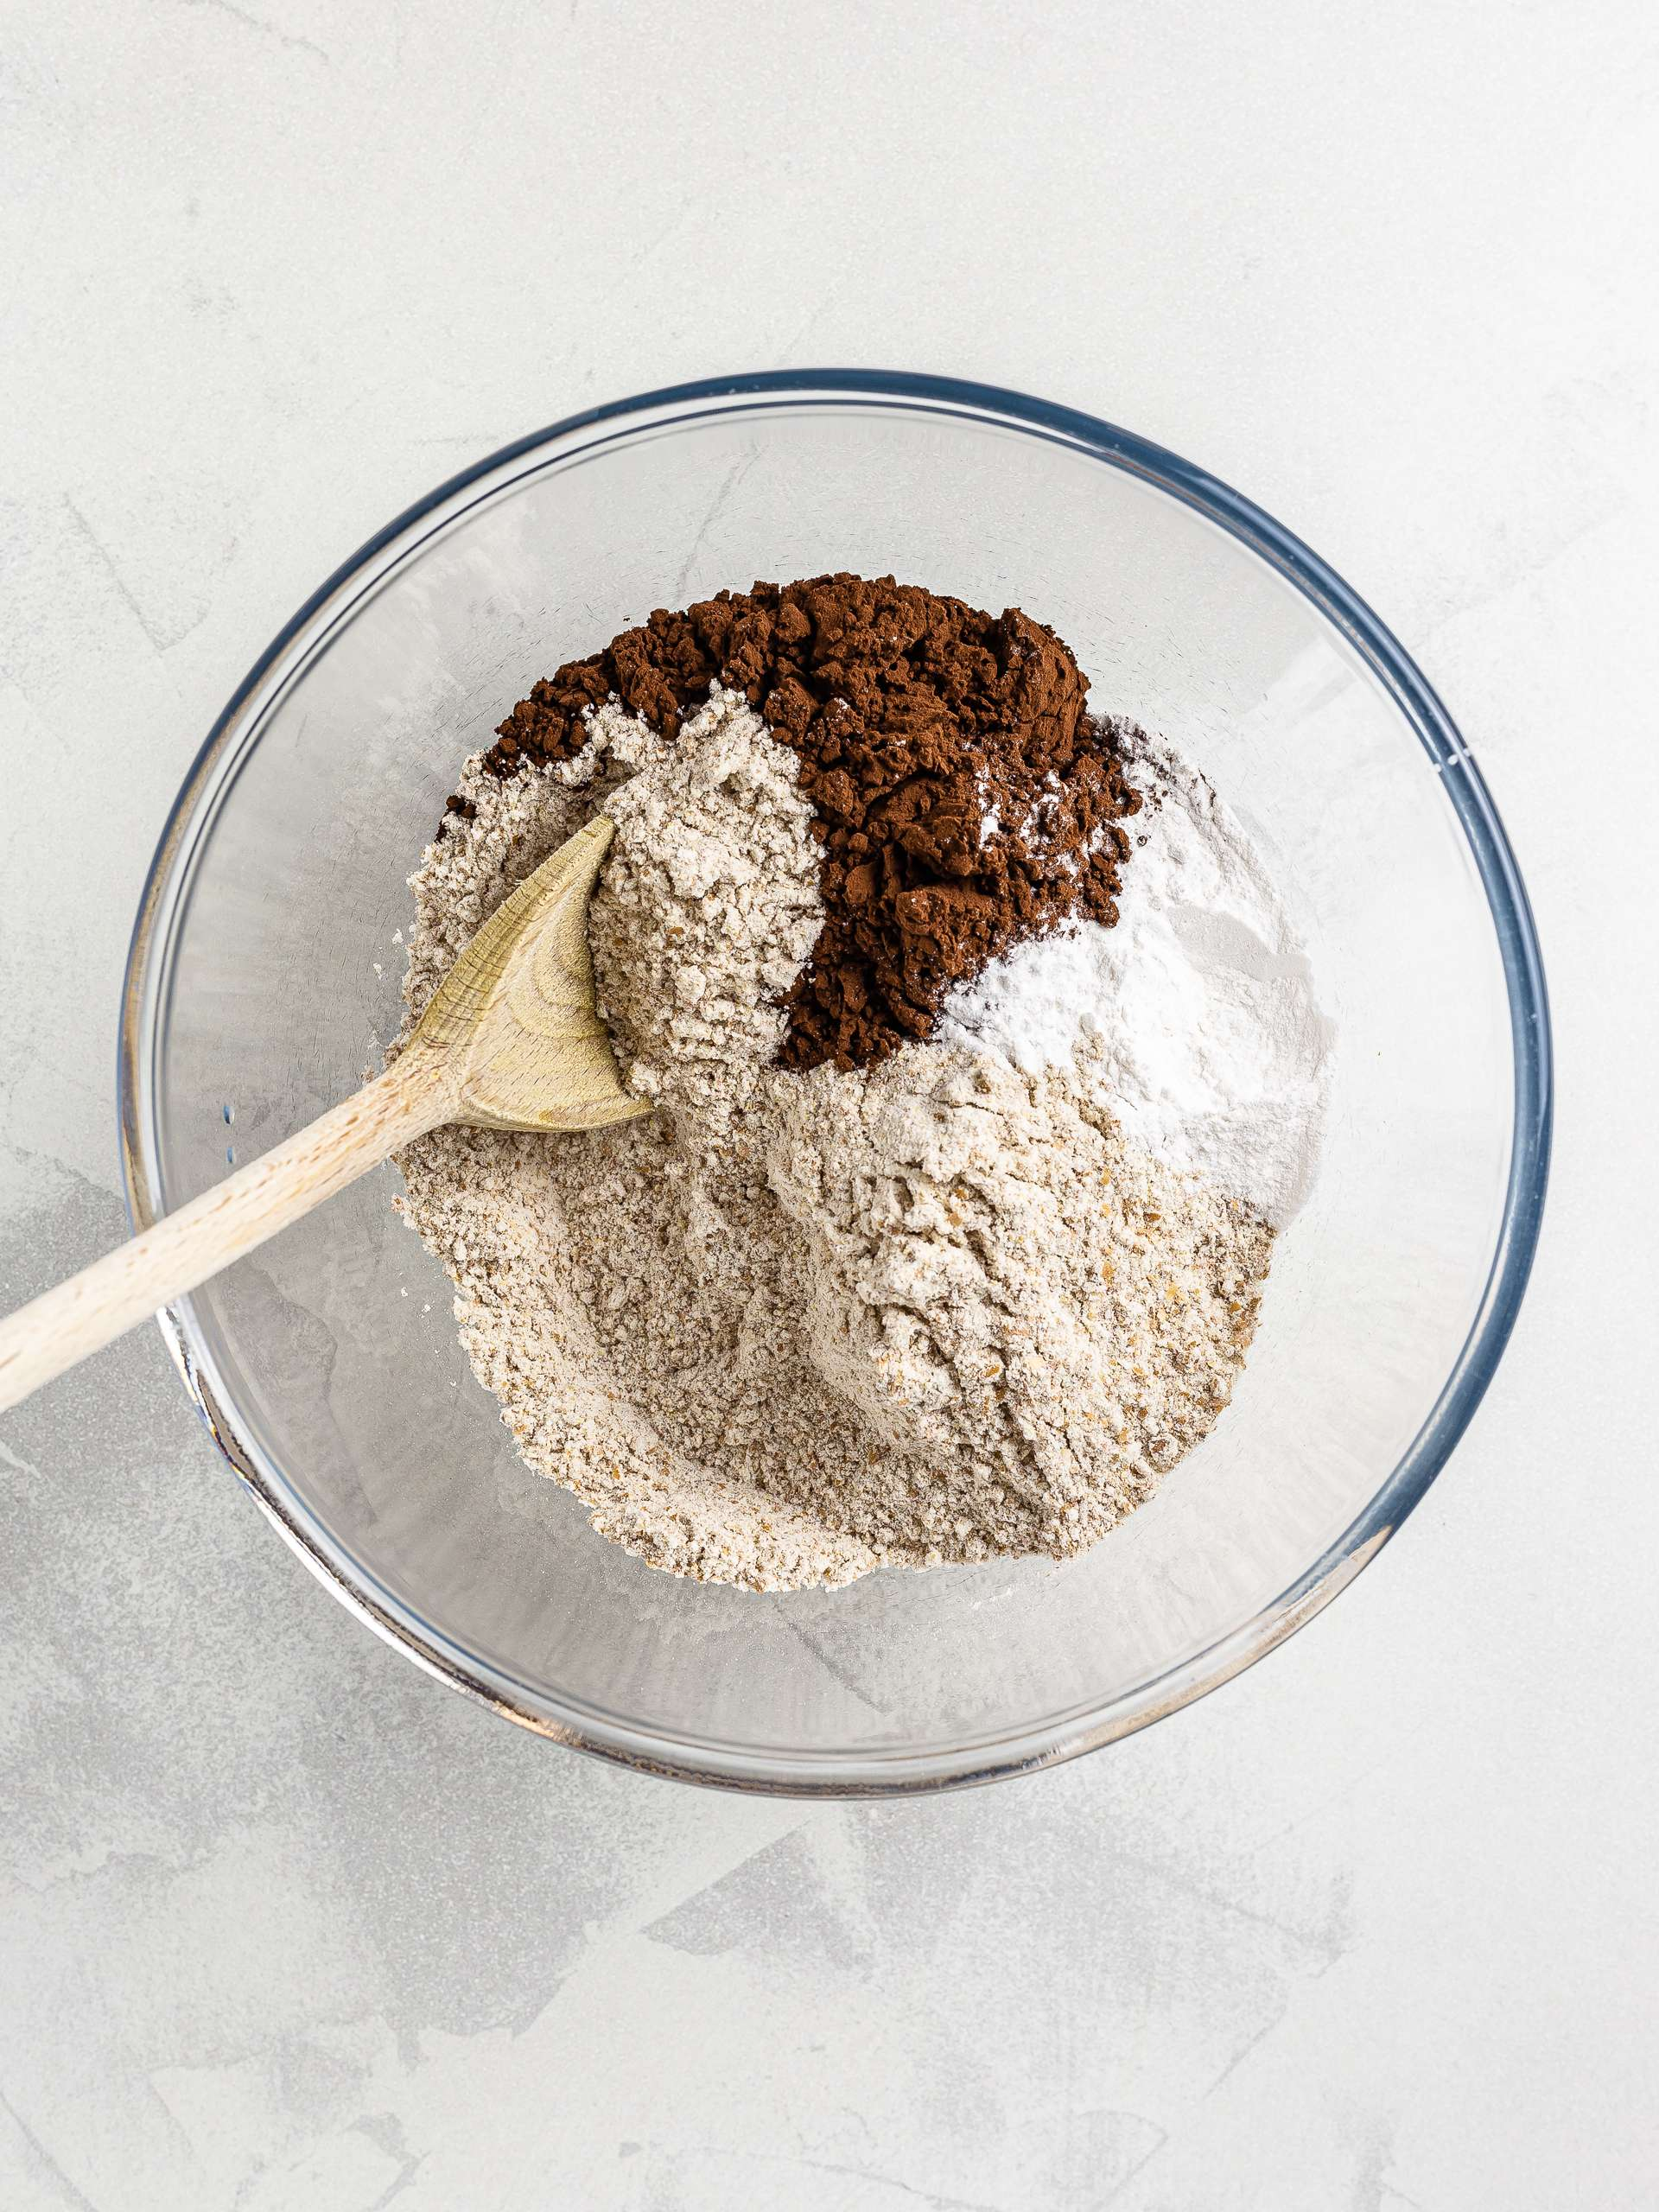 flours and cocoa powder in a bowl